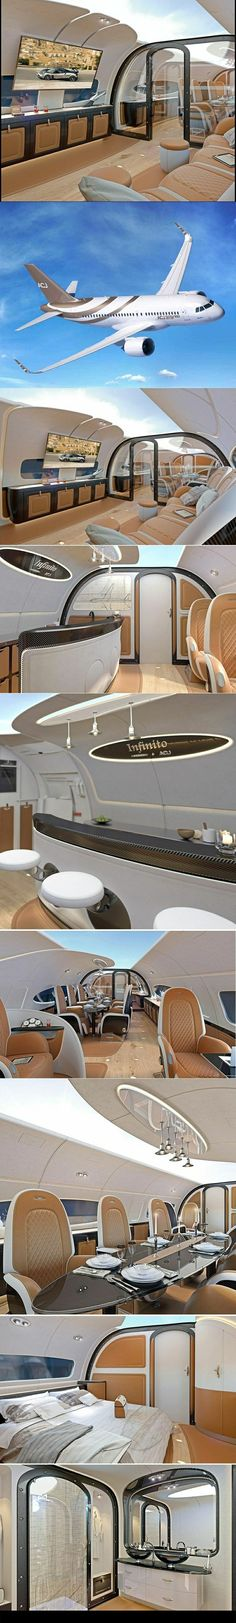 Airbus Business Jet